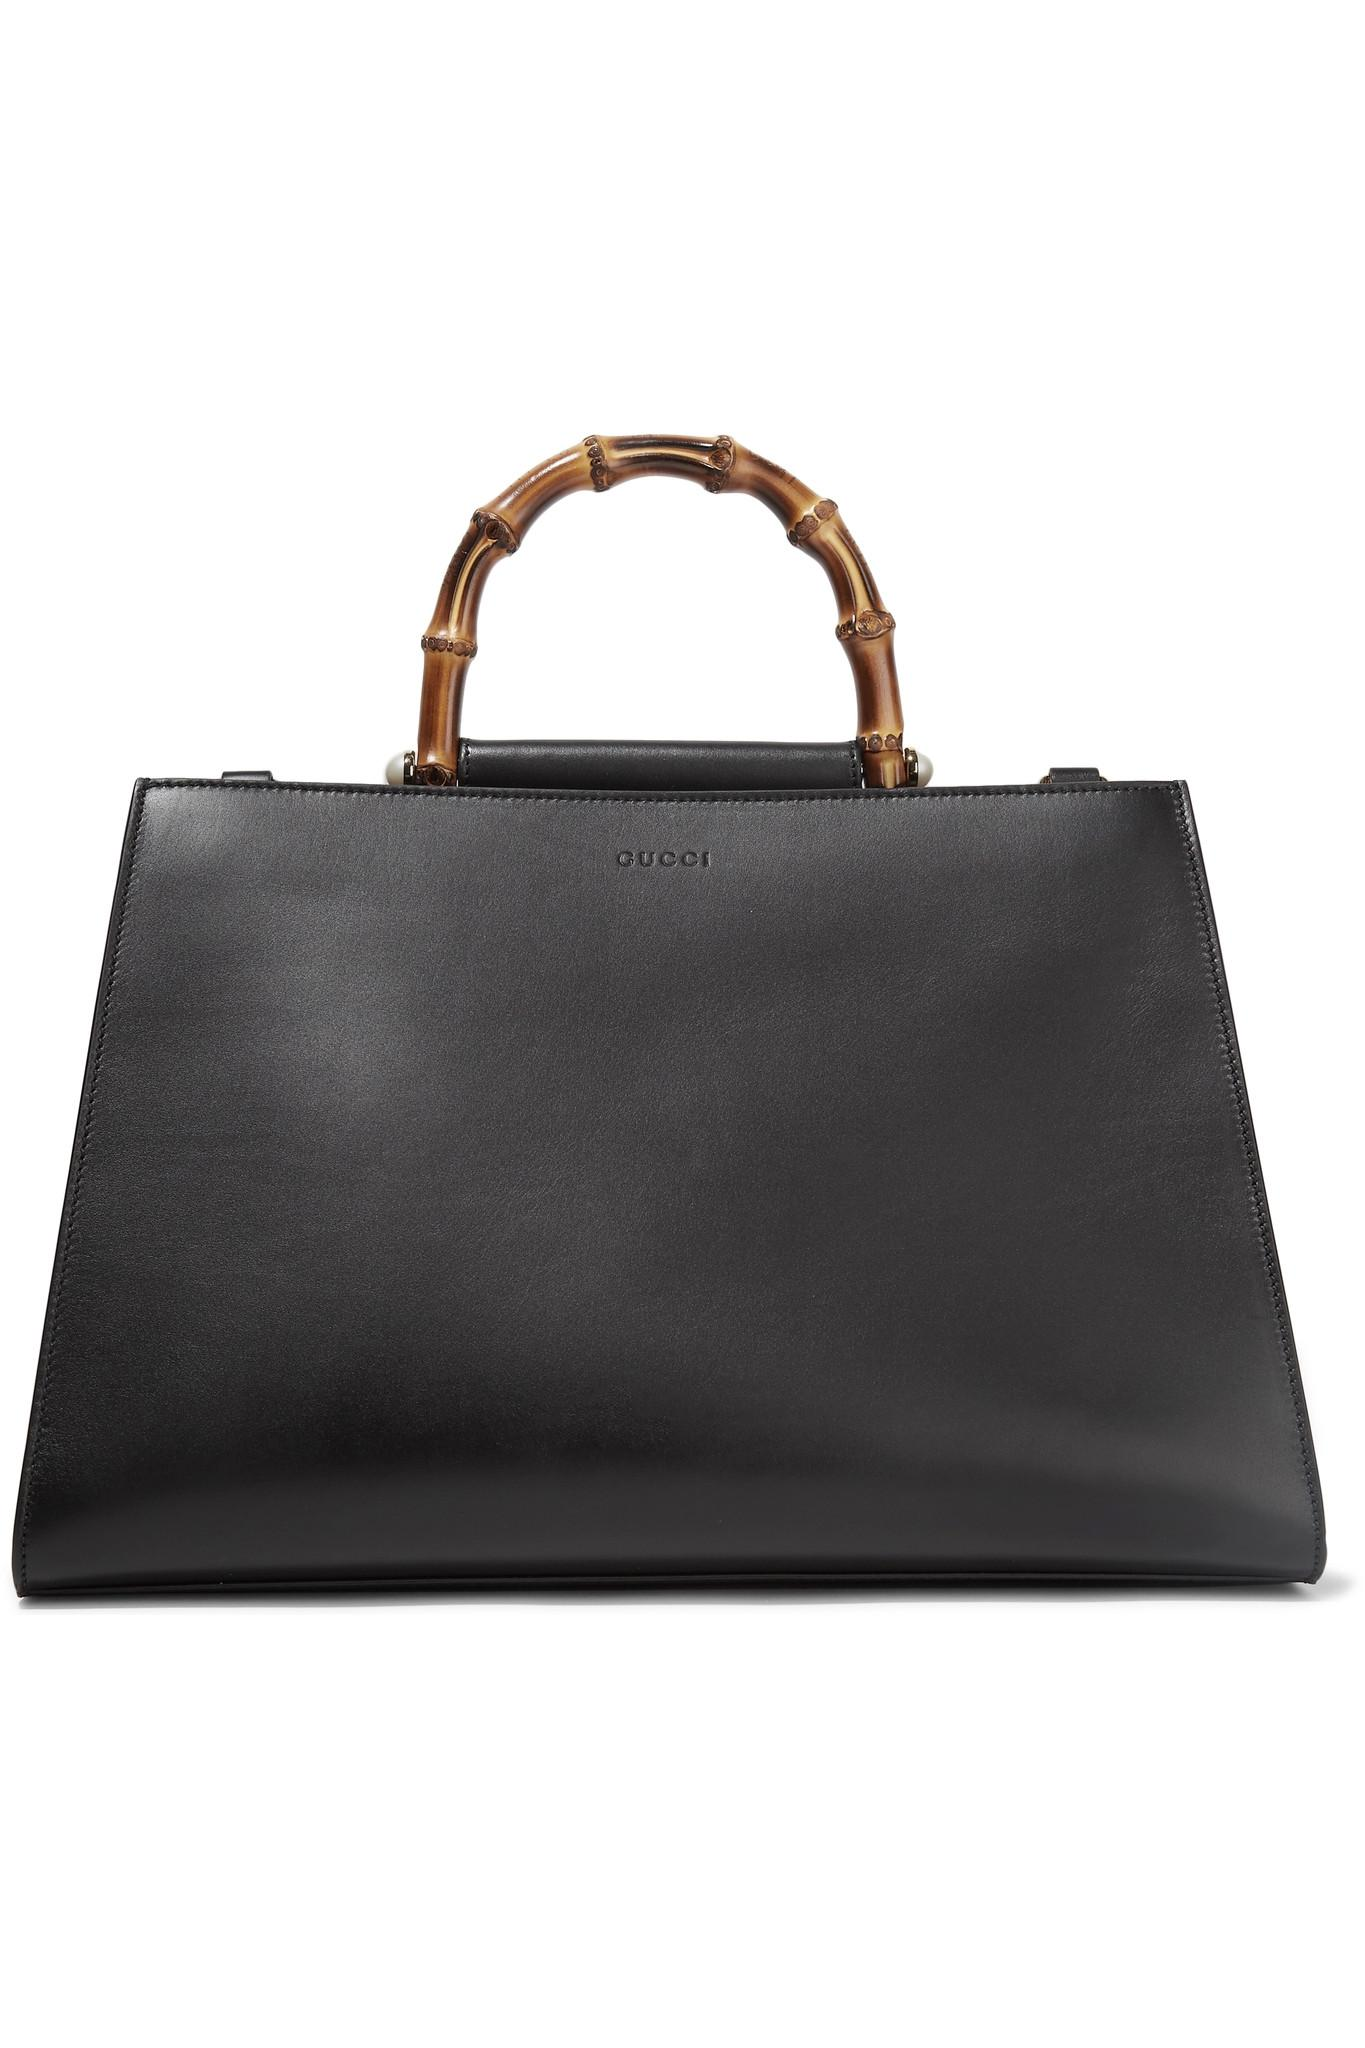 acd57b3d476 Gucci Nymphaea Bamboo Large Two-tone Leather Tote in Black - Lyst